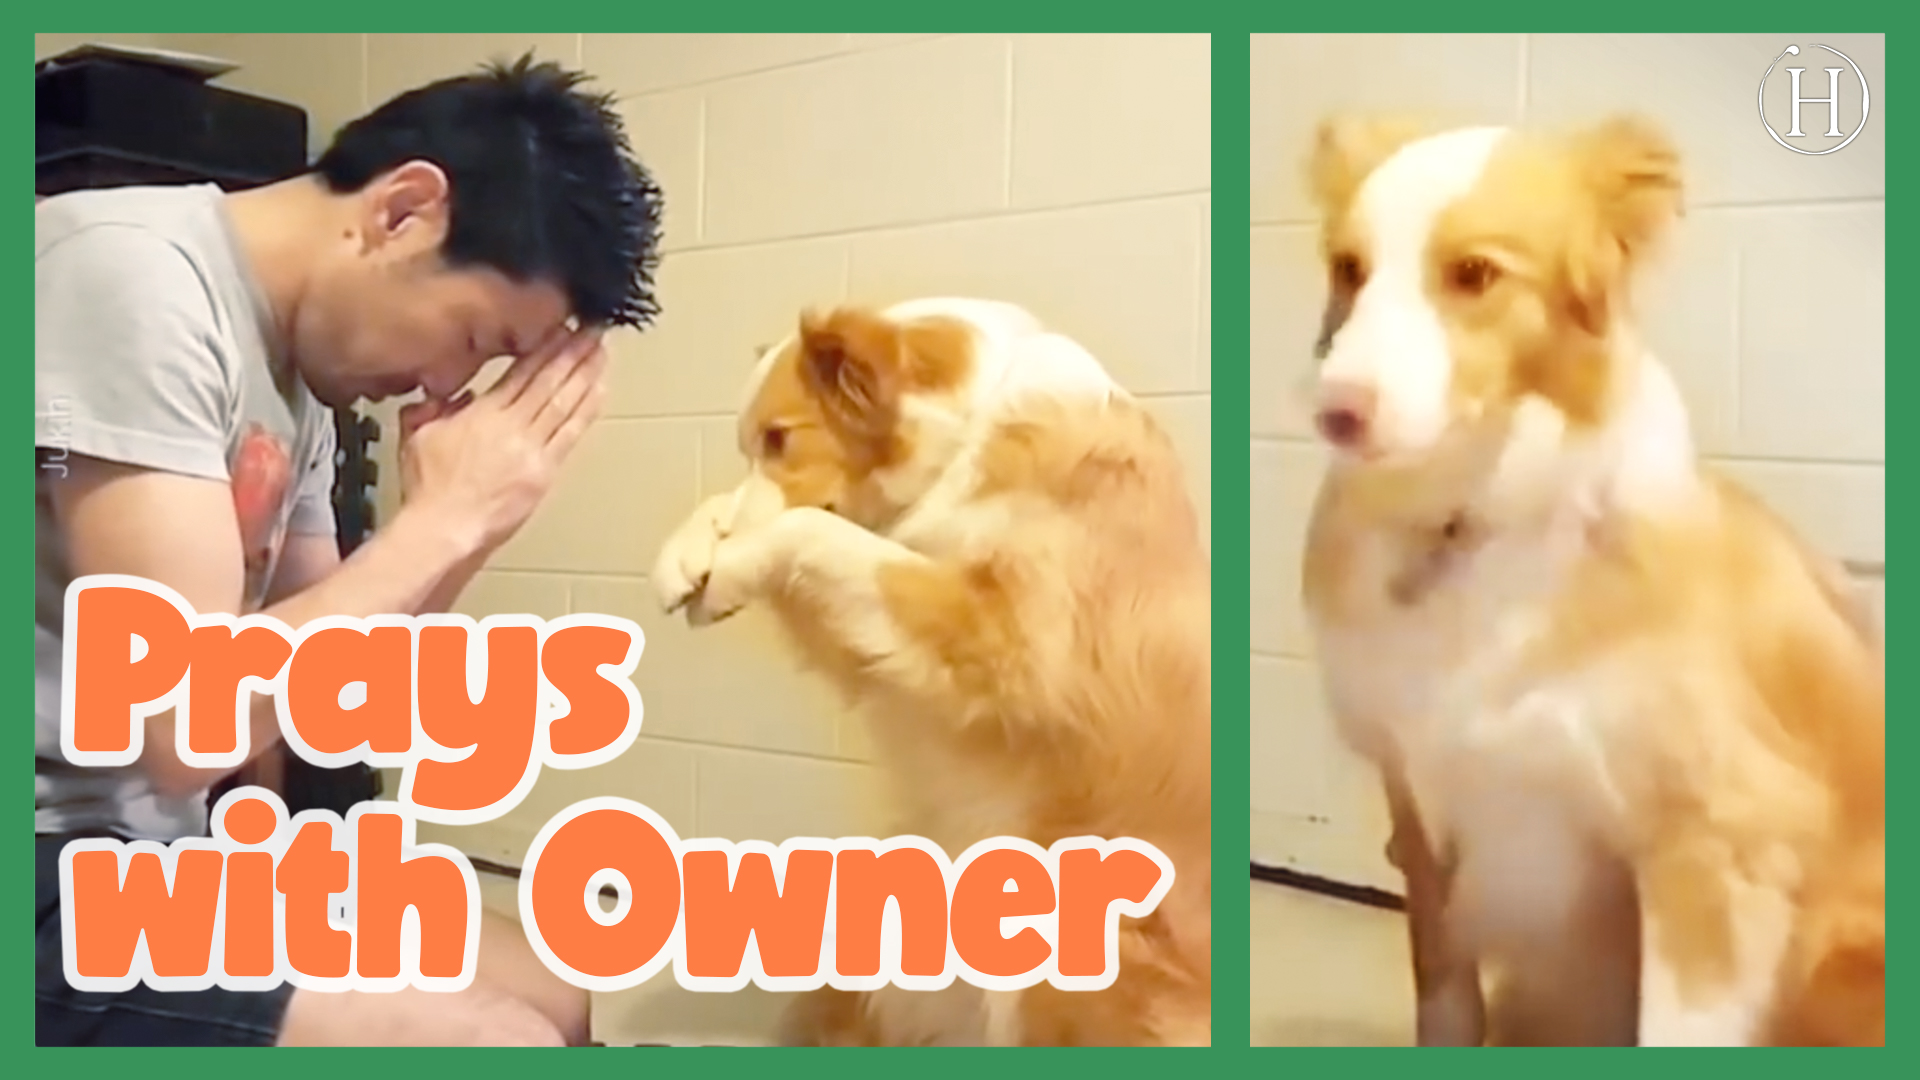 Dog Prays With Owner | Humanity Life